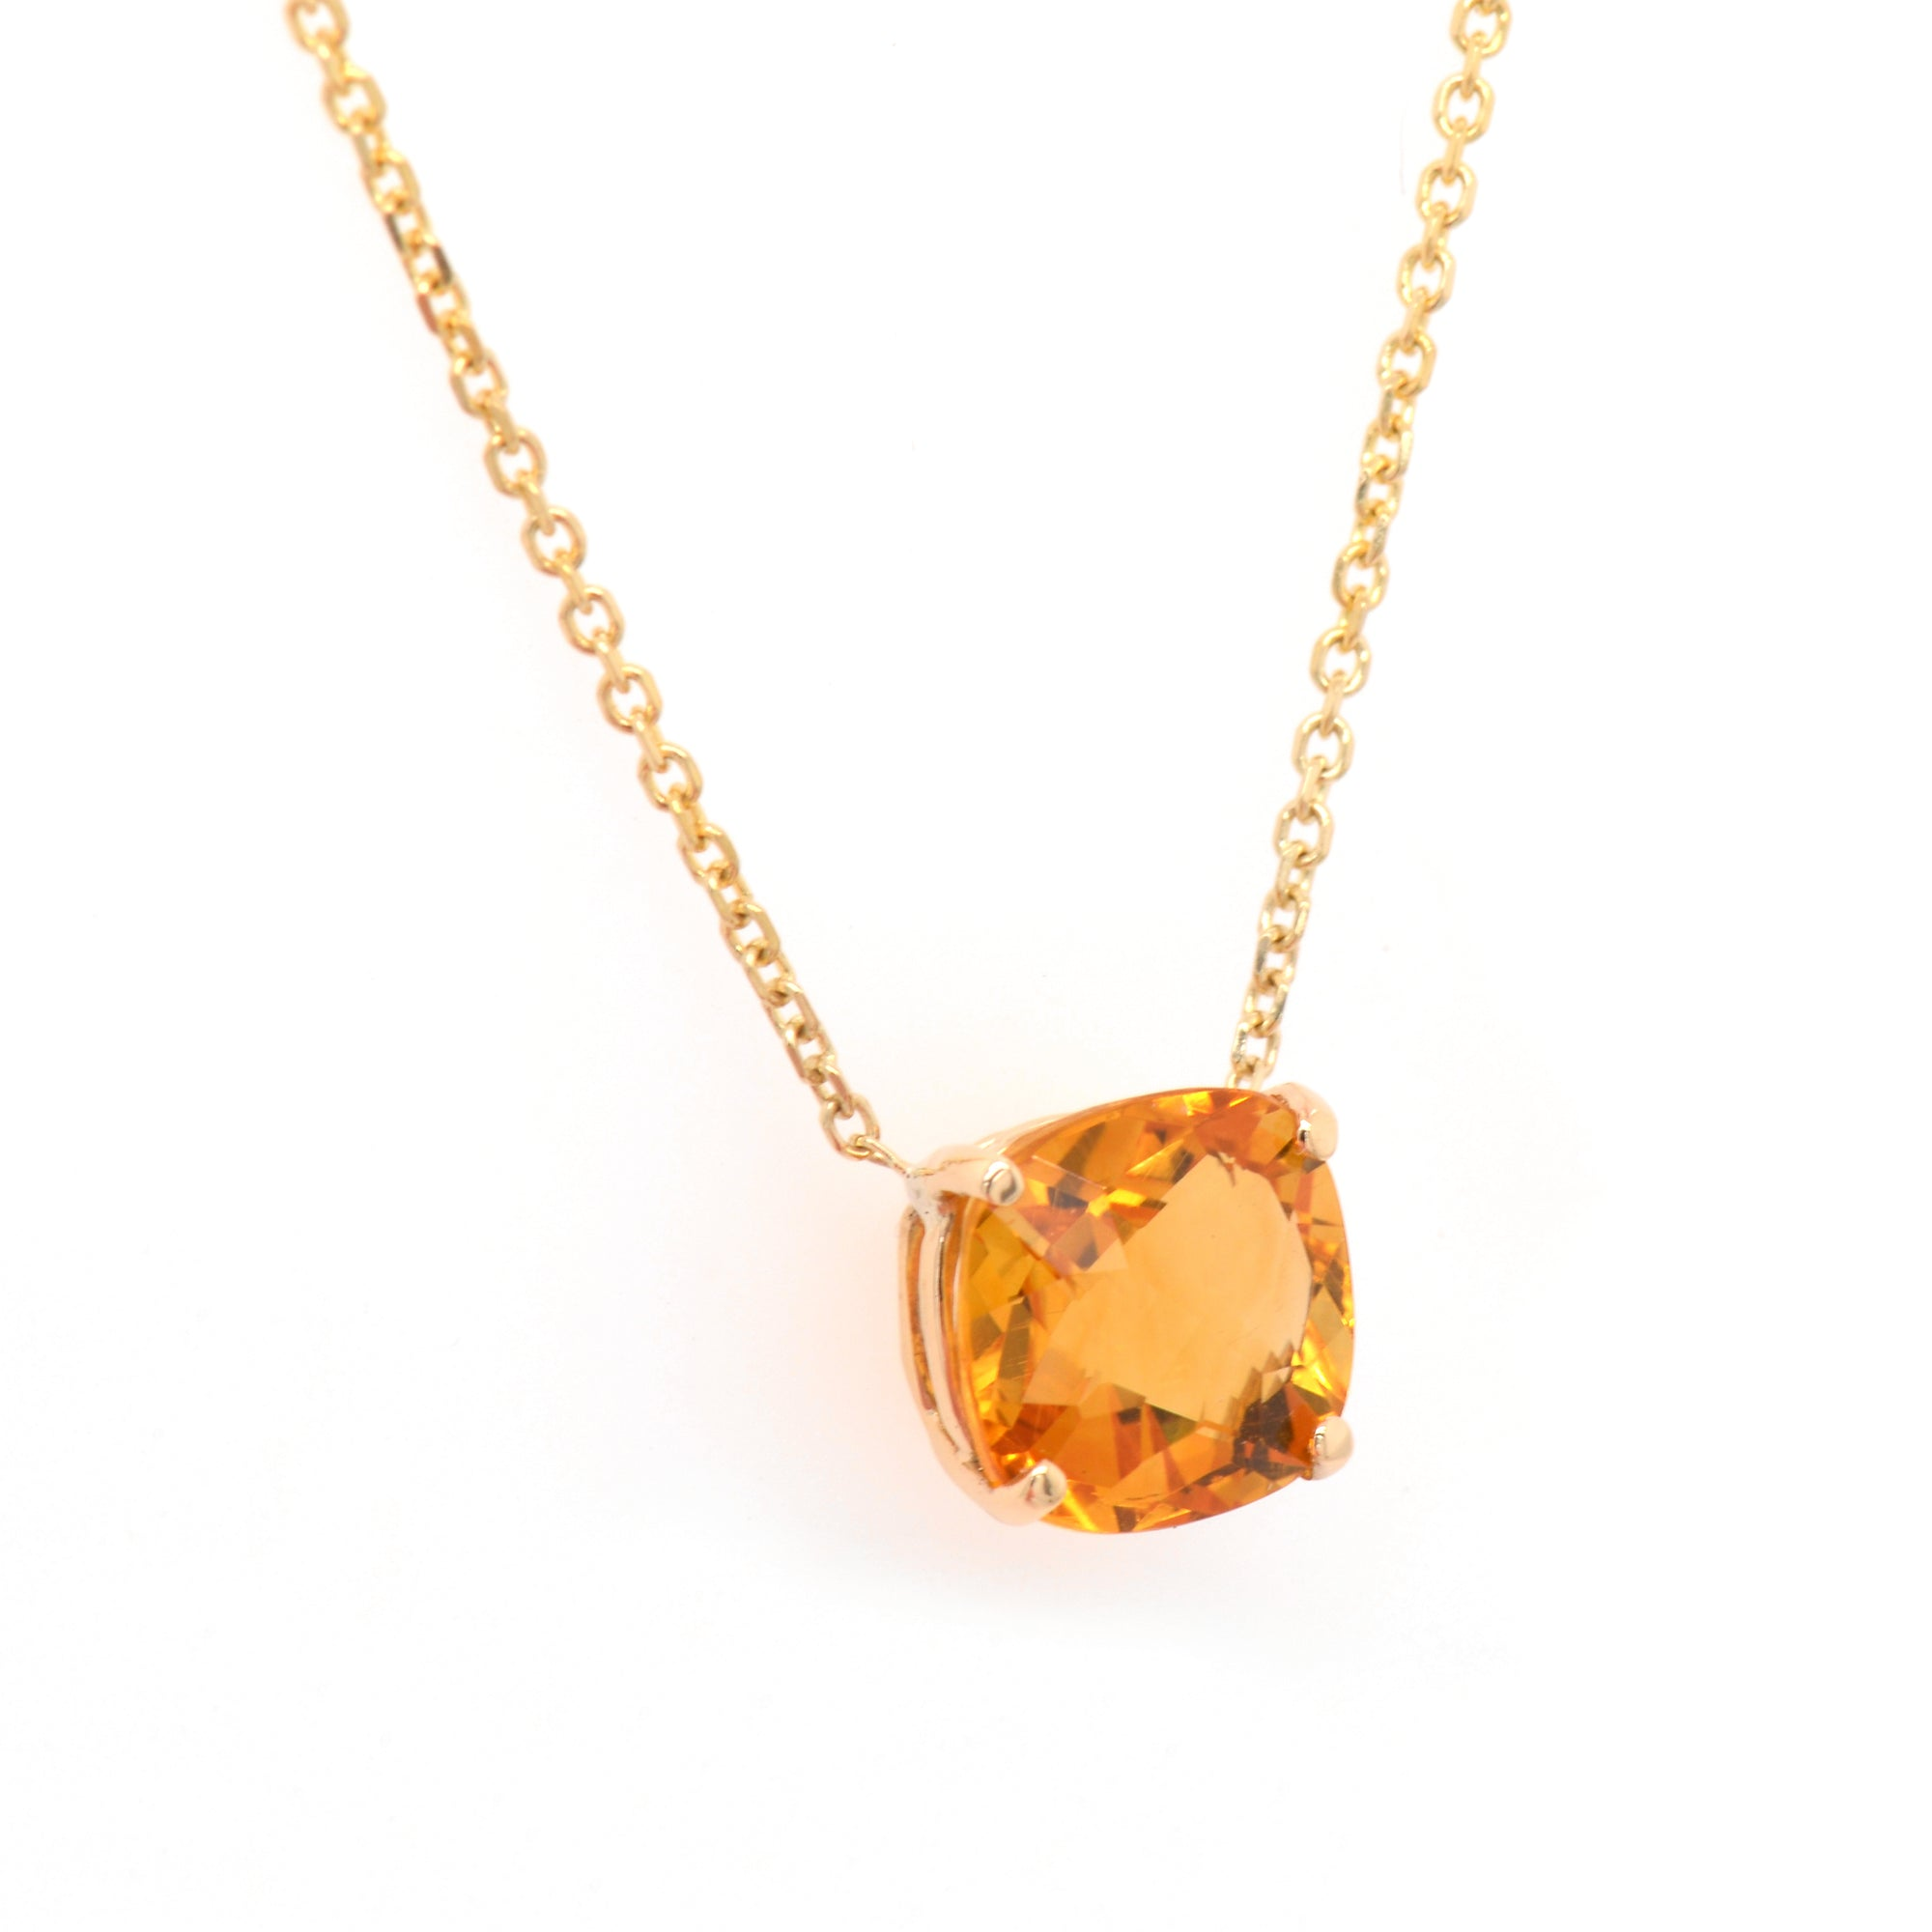 14K yellow gold citrine necklace featuring 1 cushion-shaped yellow-orange citrine measuring 8x8 mm.